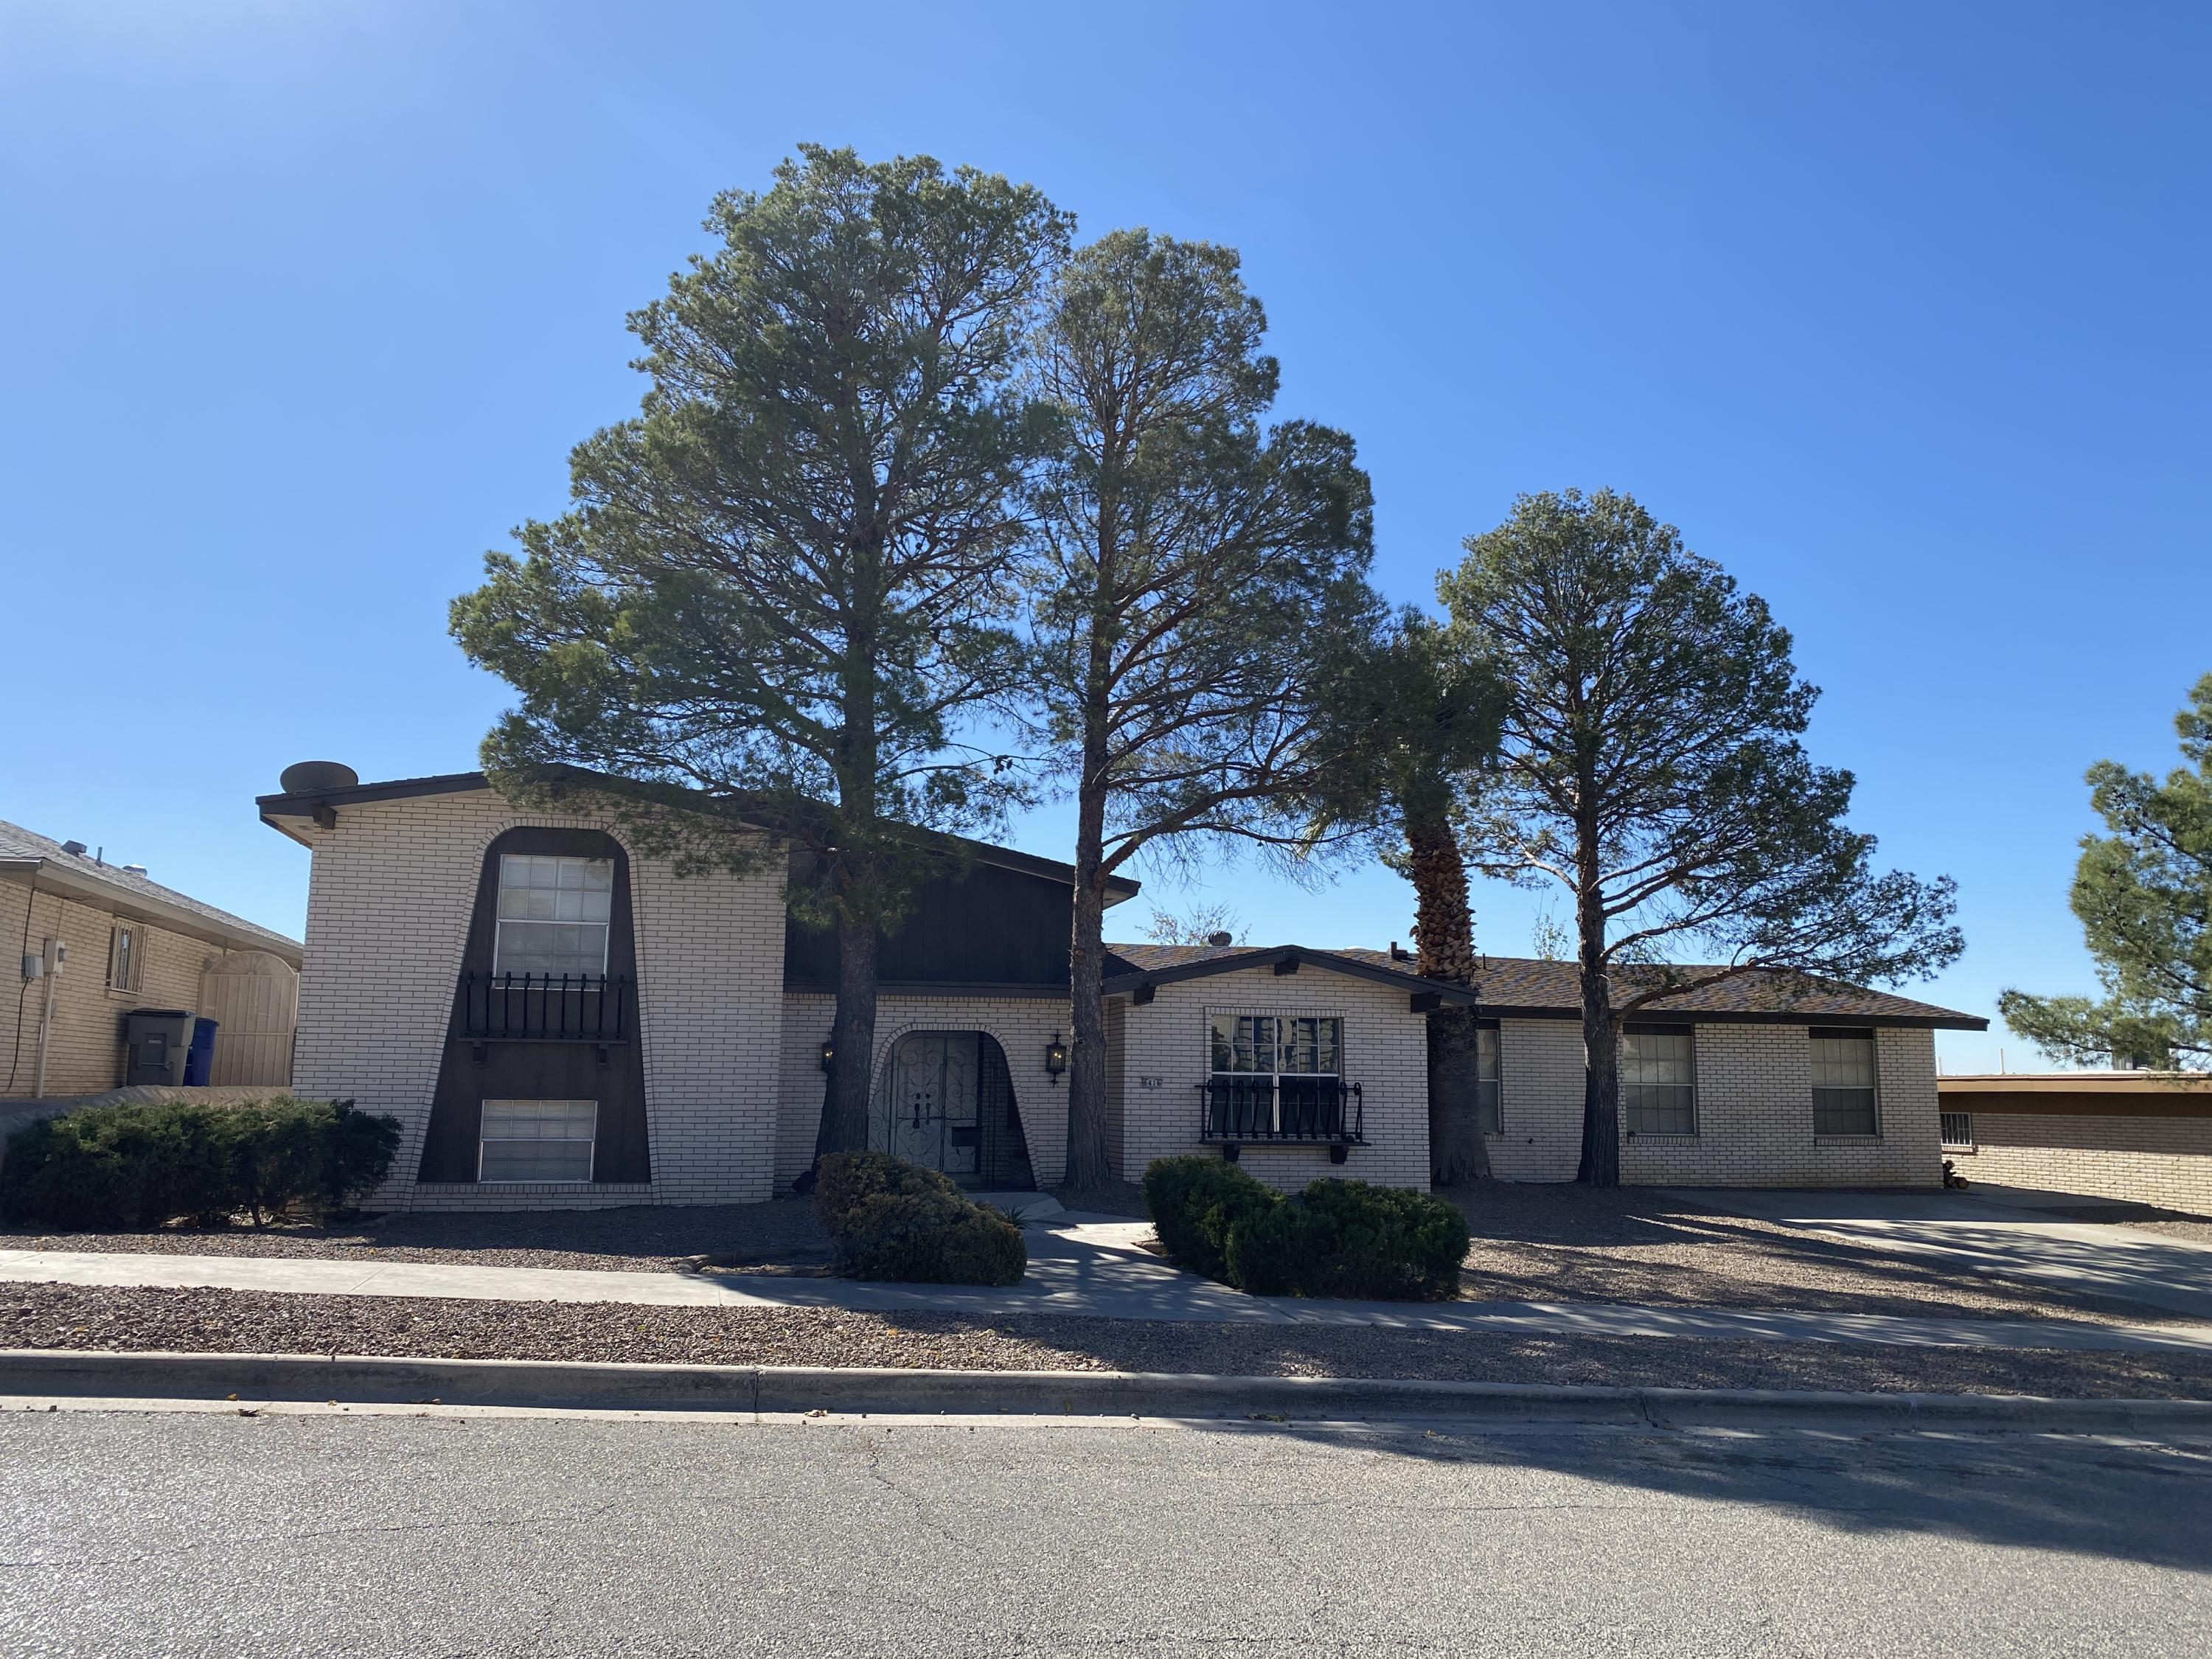 6416 PINO REAL Drive, El Paso, Texas 79912, 6 Bedrooms Bedrooms, ,3 BathroomsBathrooms,Residential Rental,For Rent,PINO REAL,837060